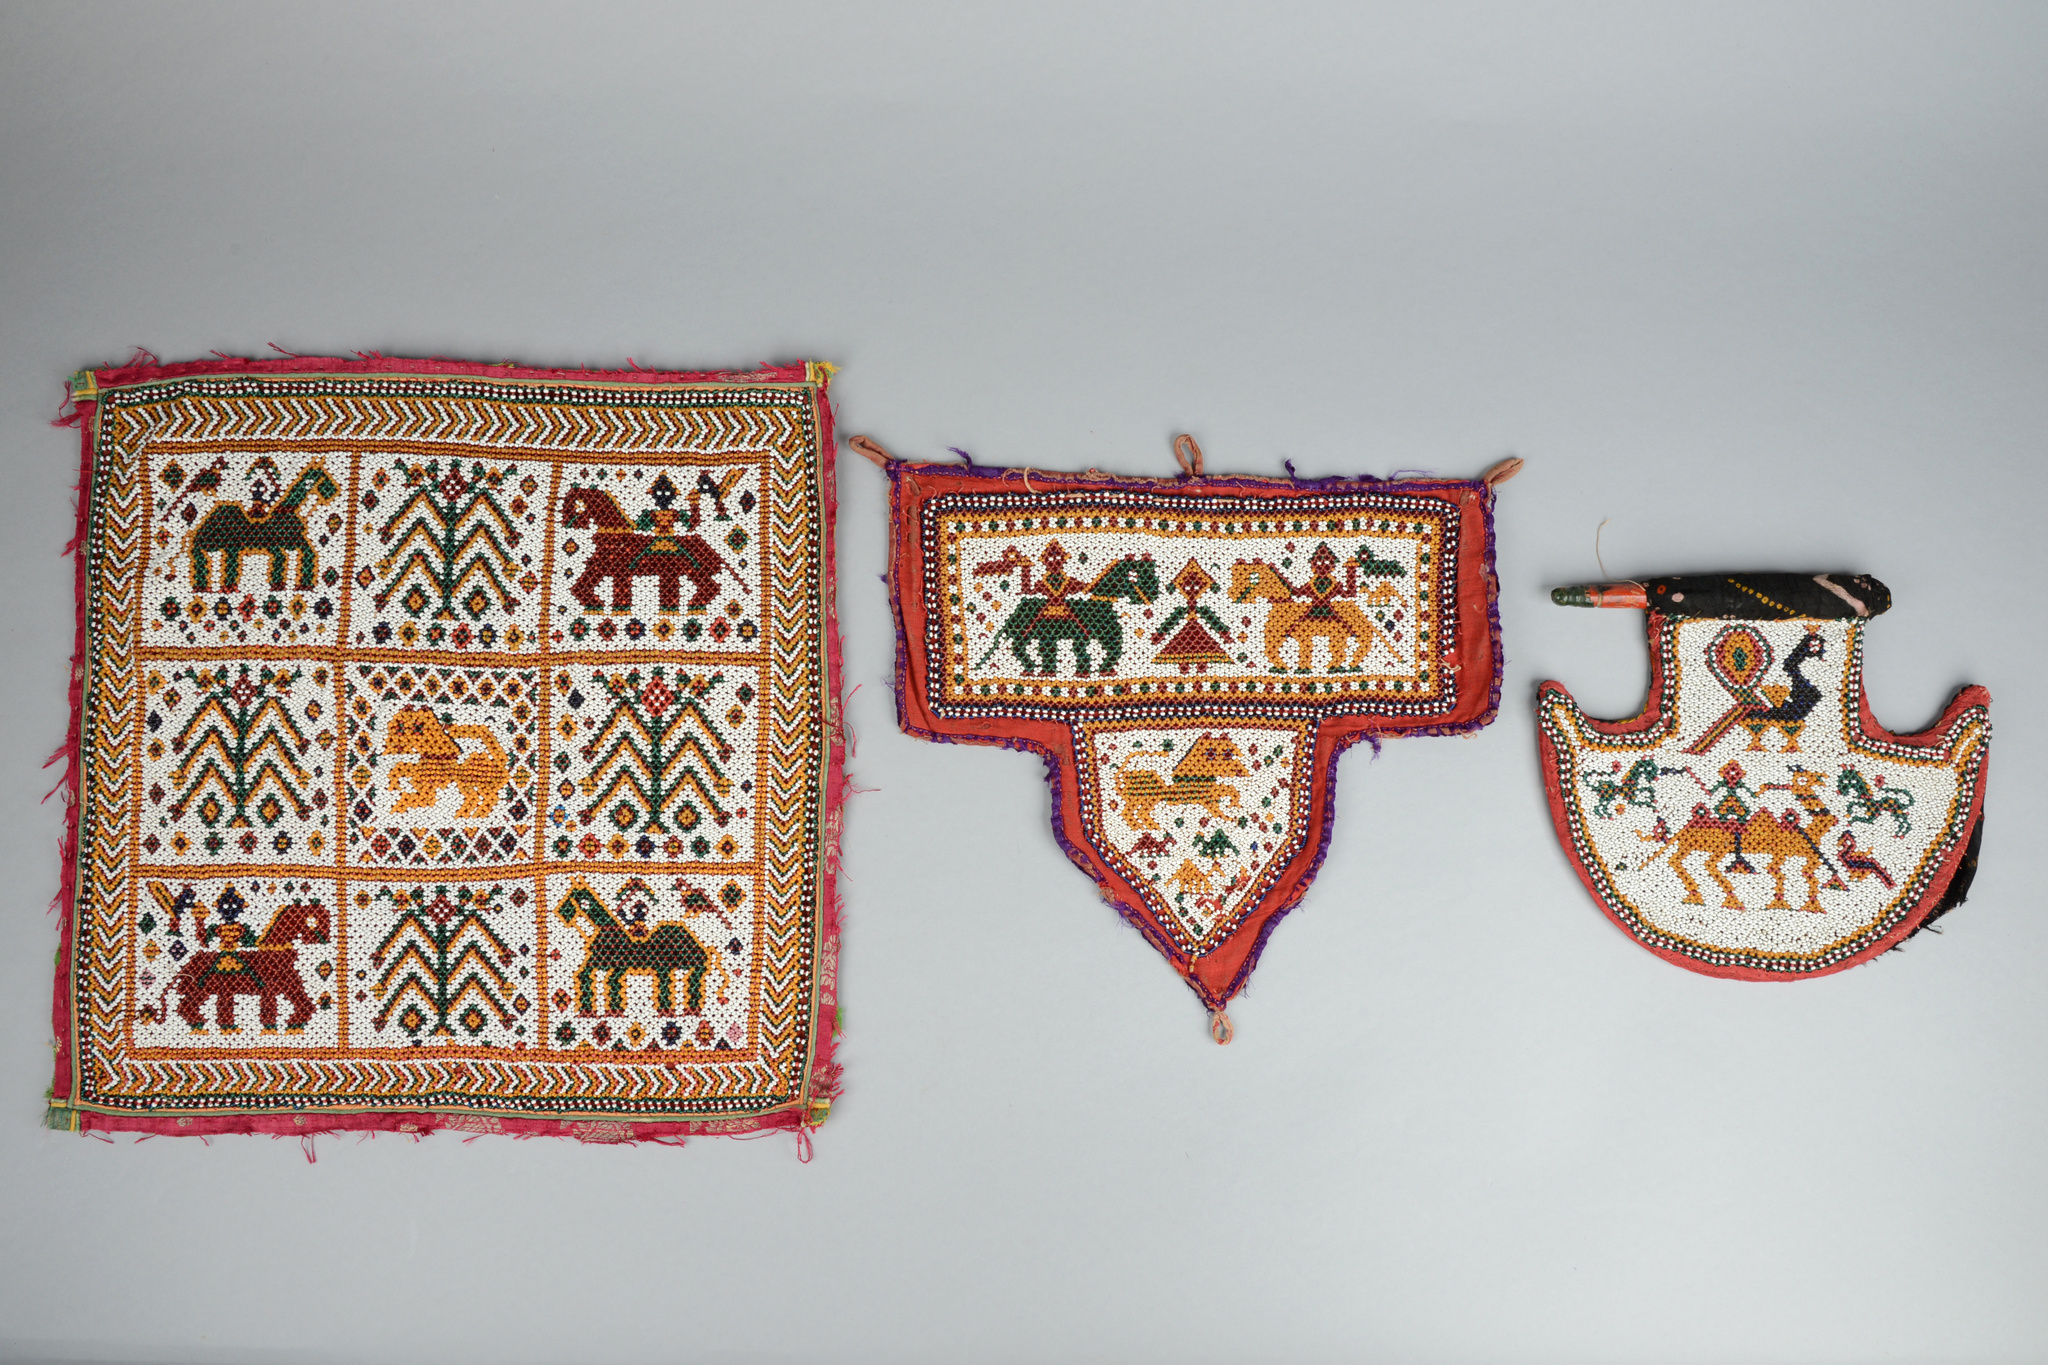 Fan and two textiles with